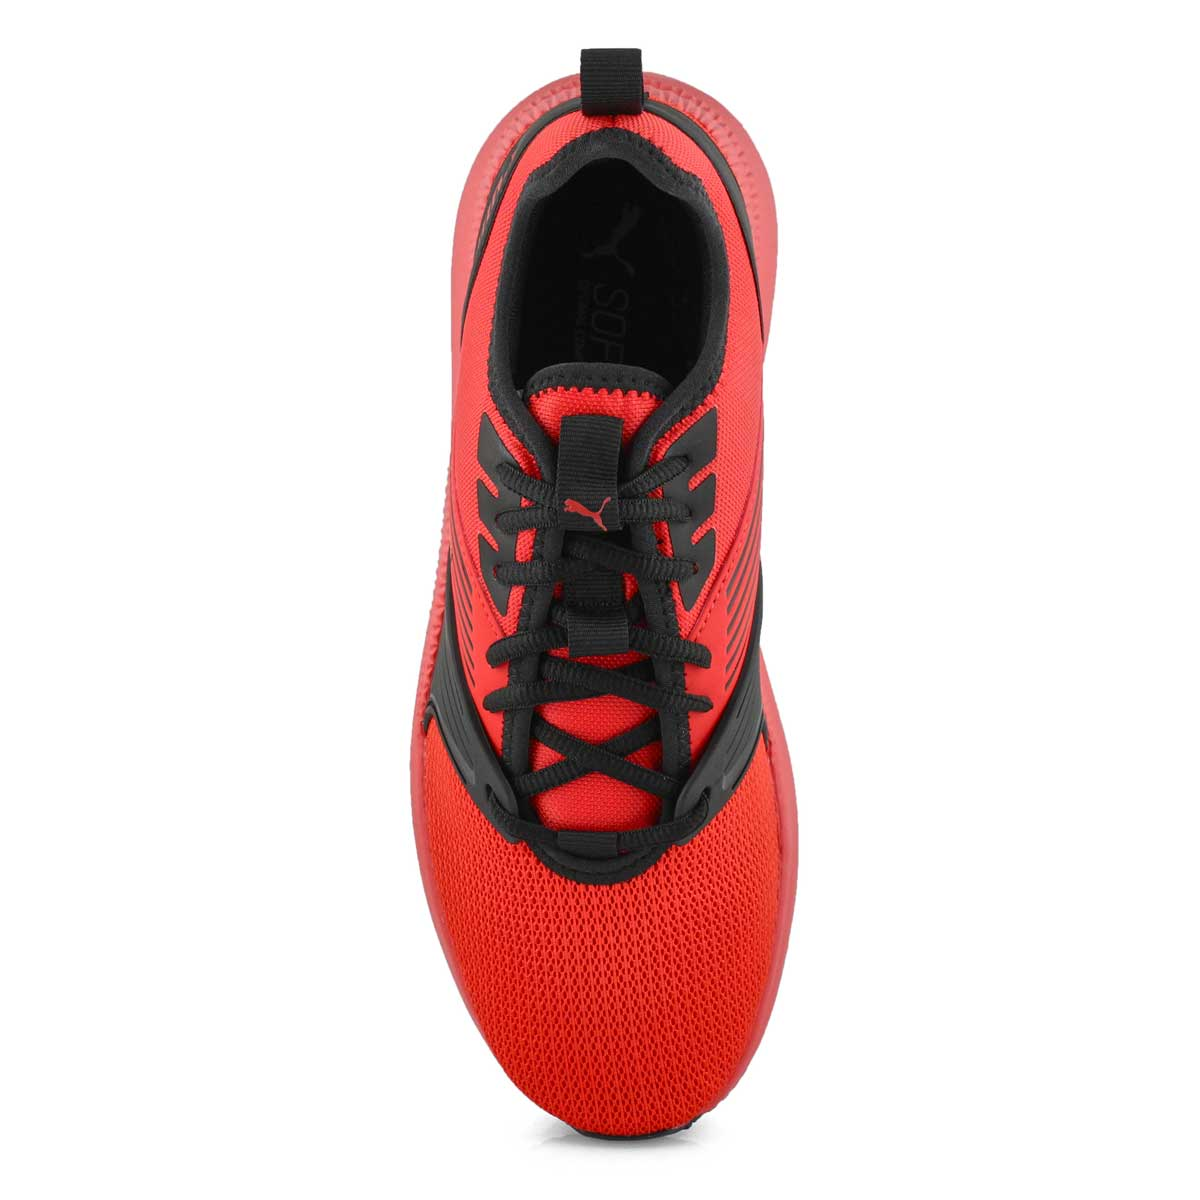 Mns Pacer Next FFWD red/blk laceup snkr